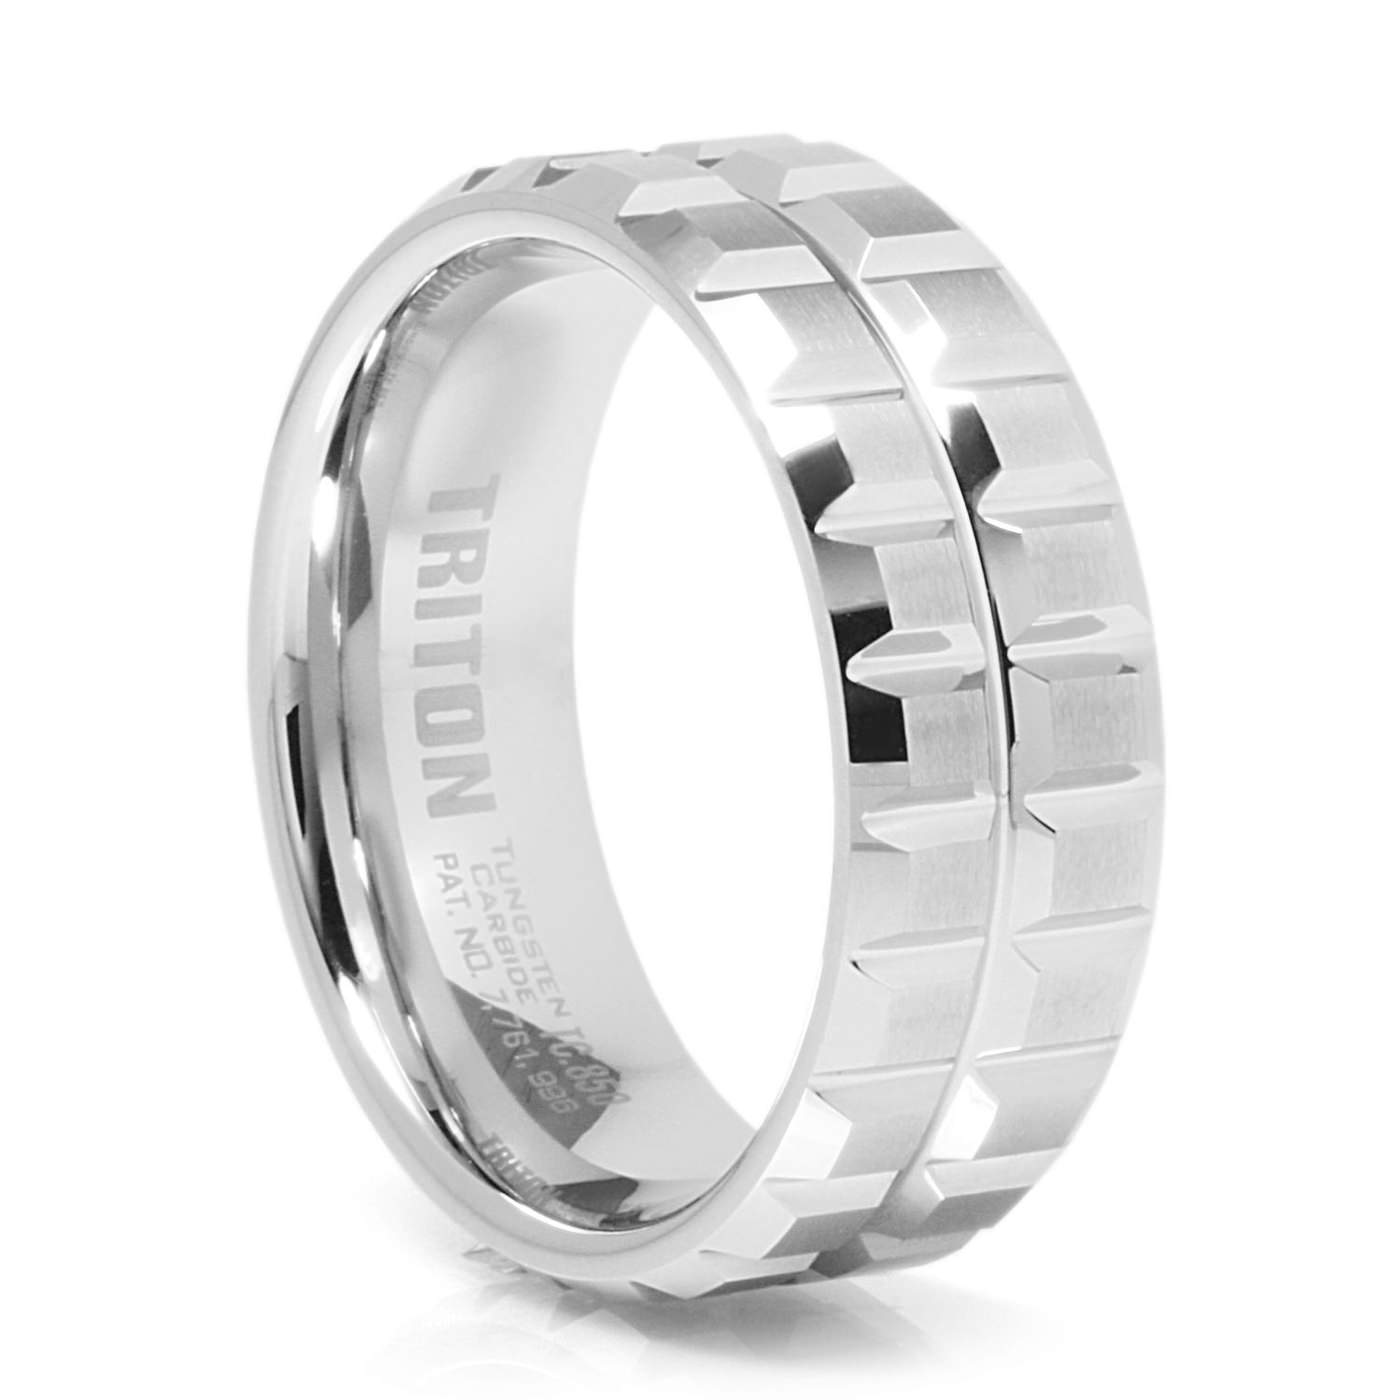 Sprocket Men S White Tungsten Carbide Band By Triton